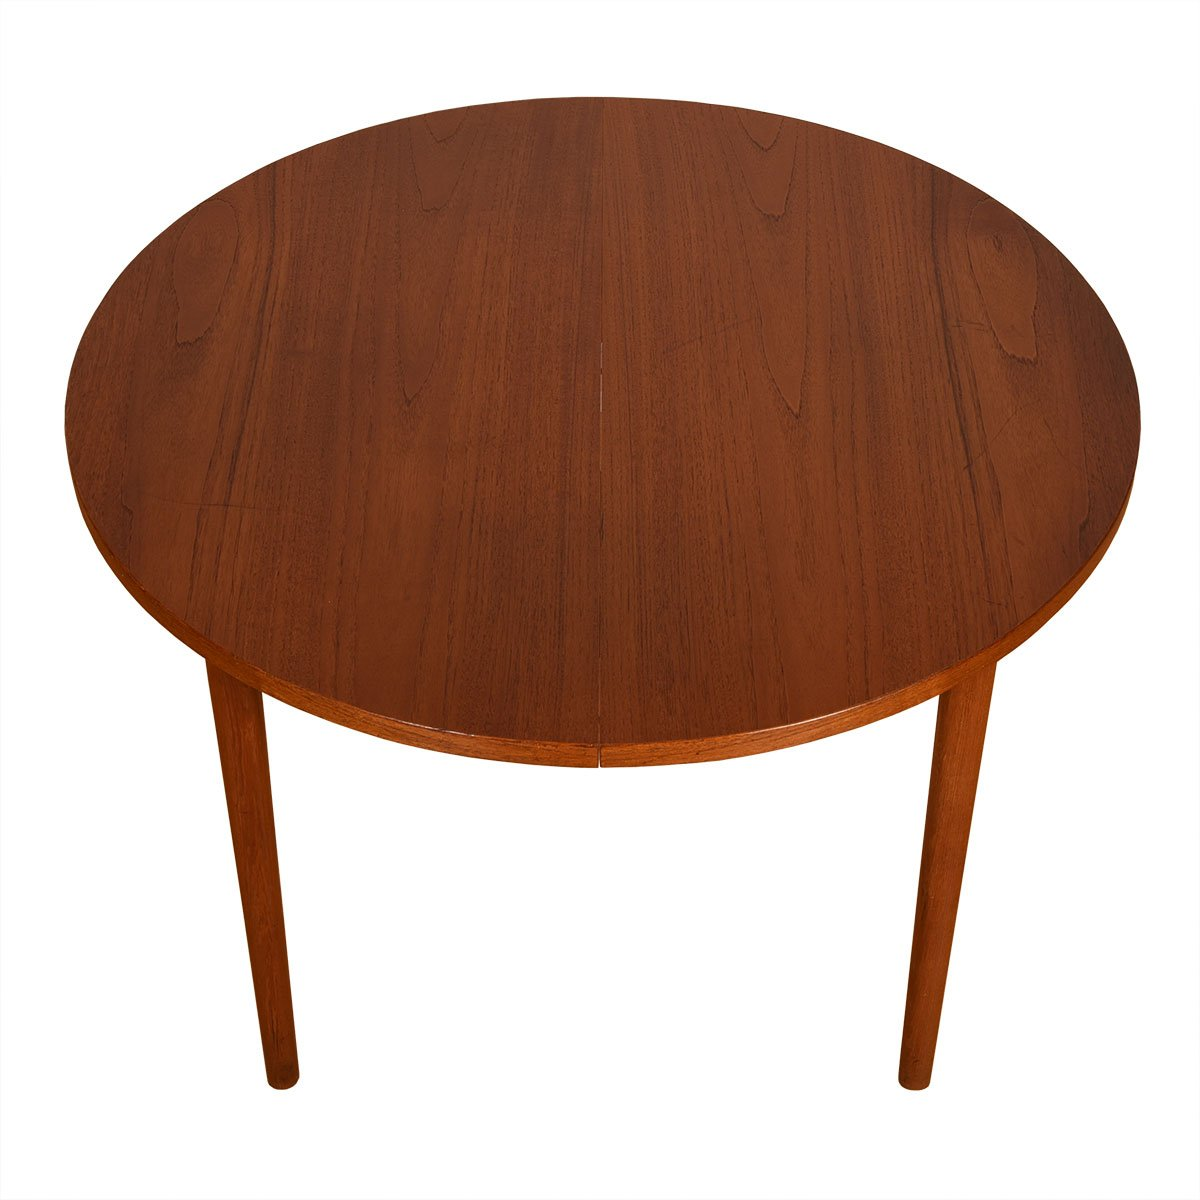 43.5″ Danish Teak Compact Round Dining Table